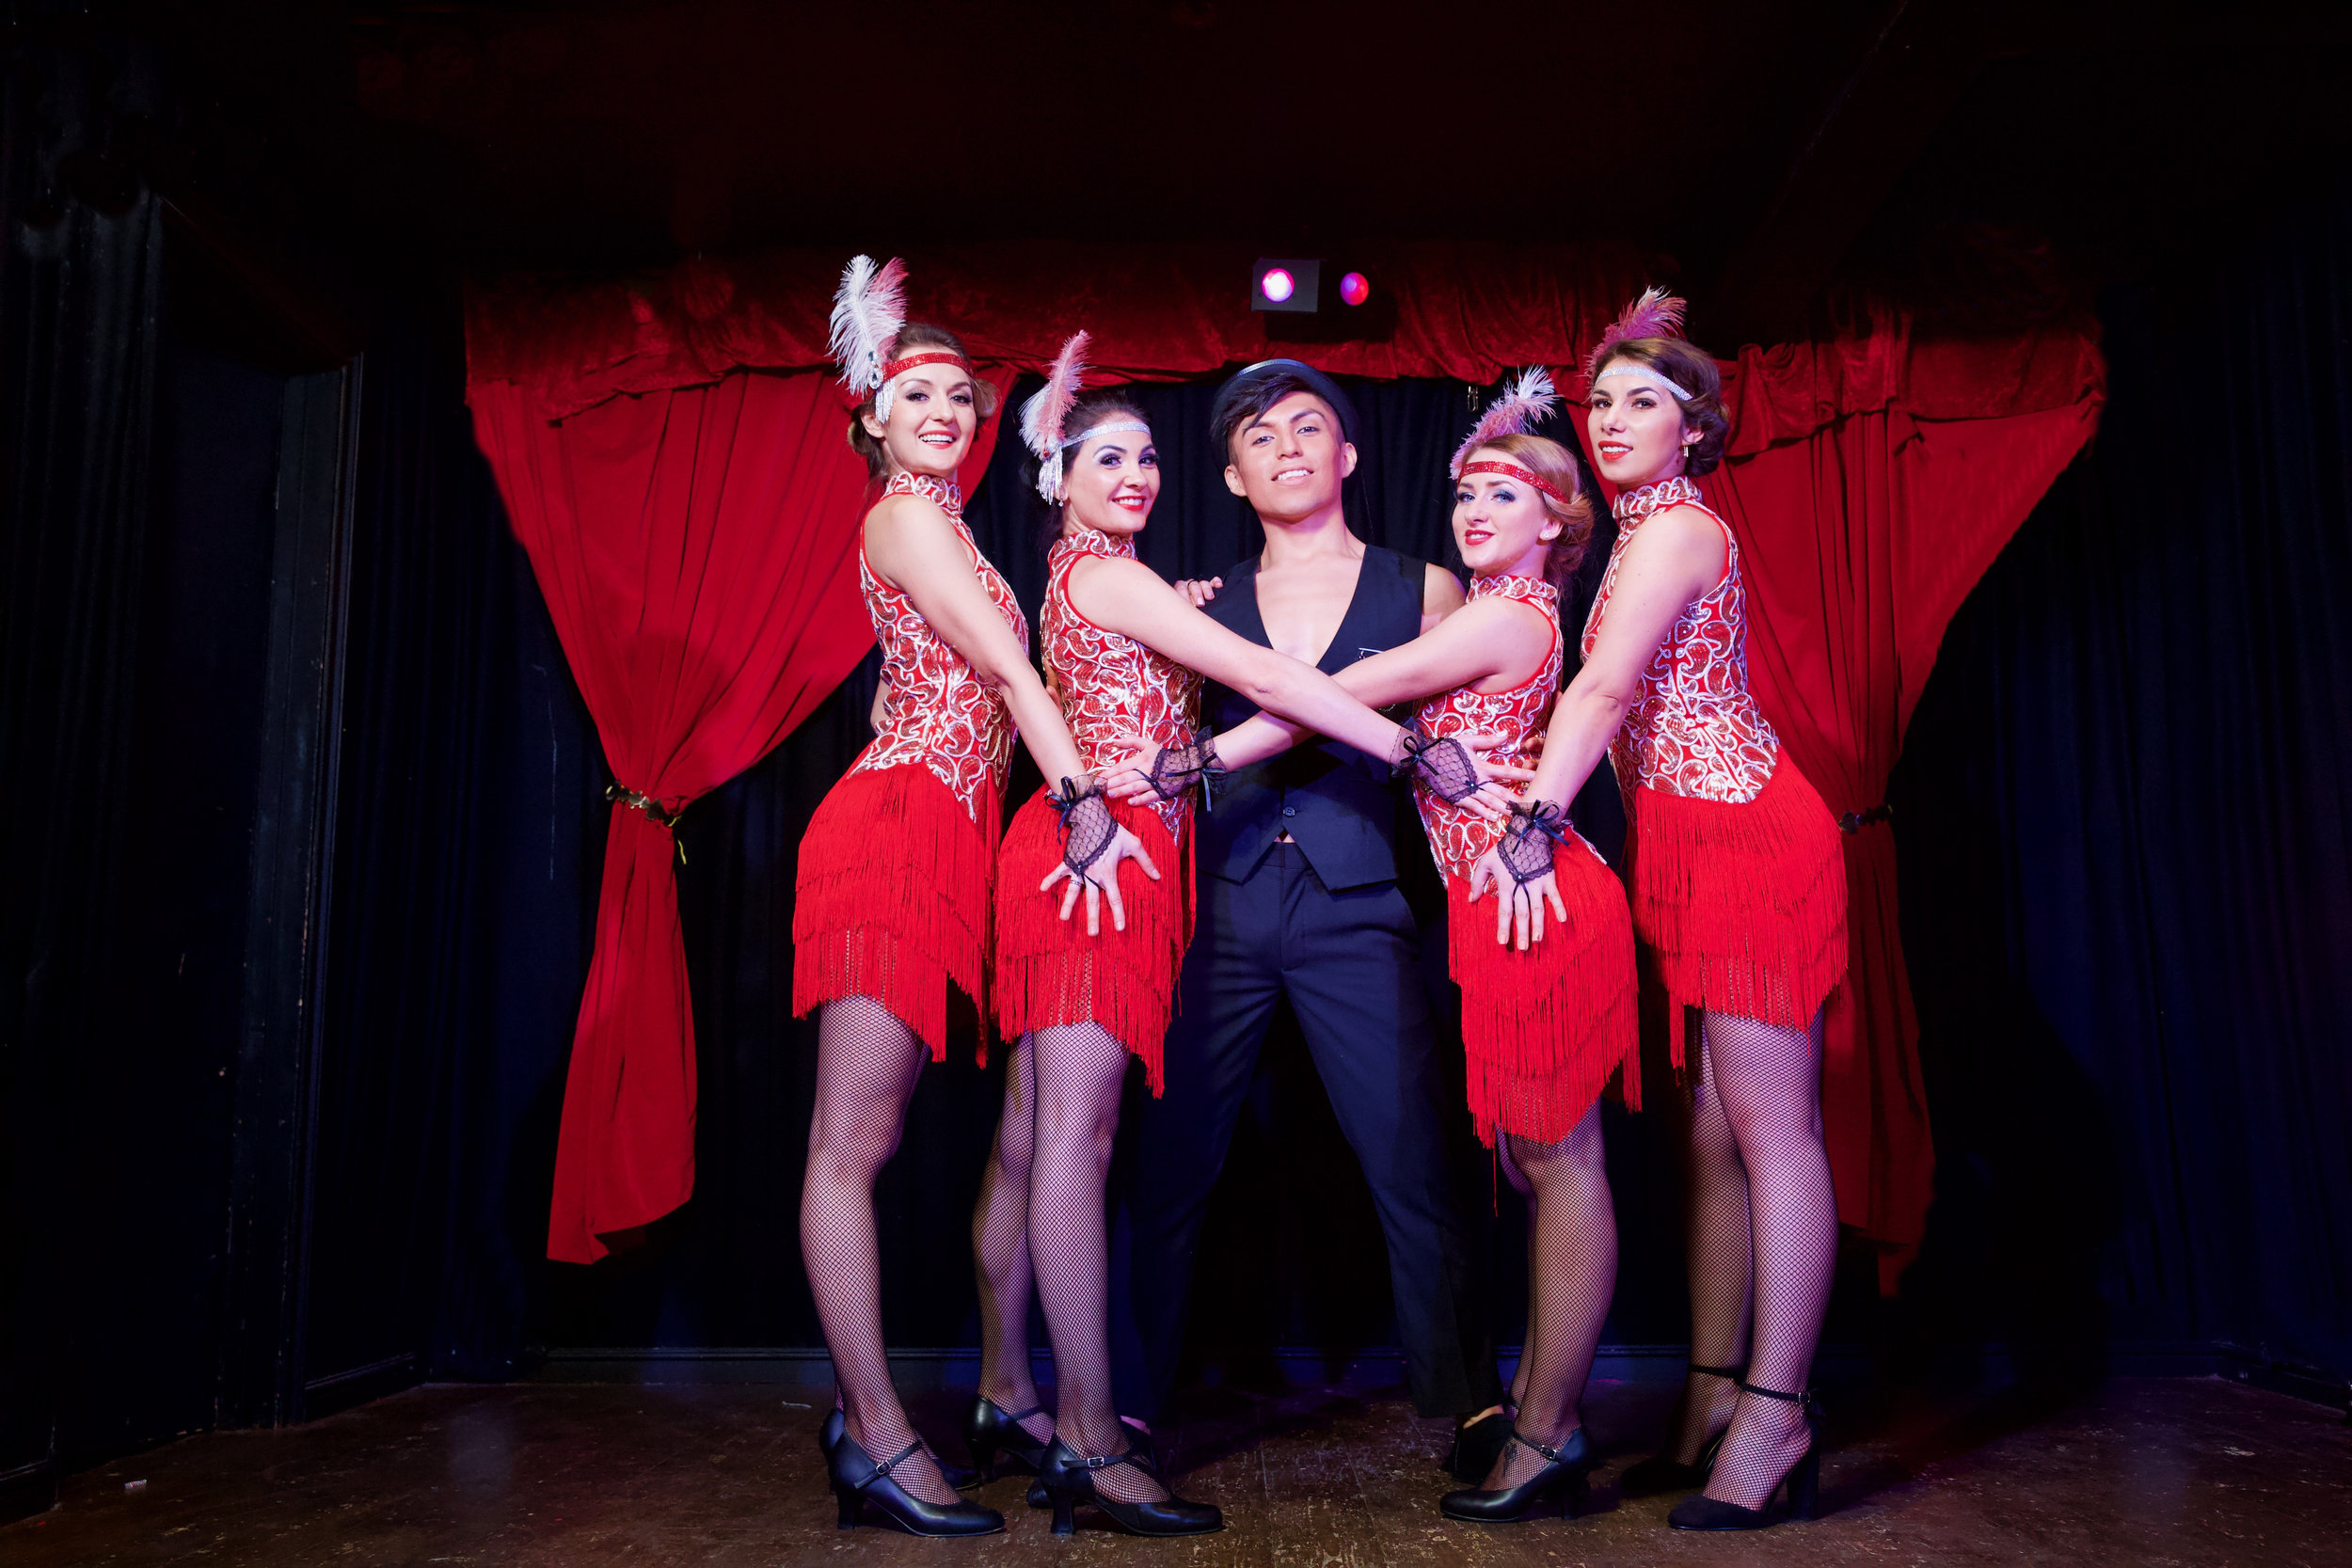 Take a step back to the  1920s/1930s  and let our  Charleston dancers  and flapper girls bring your Great Gatsby event theme to life. If you're looking for authentic and  fun flapper-style entertainment , hire our Great Gatsby dancers for your next event.